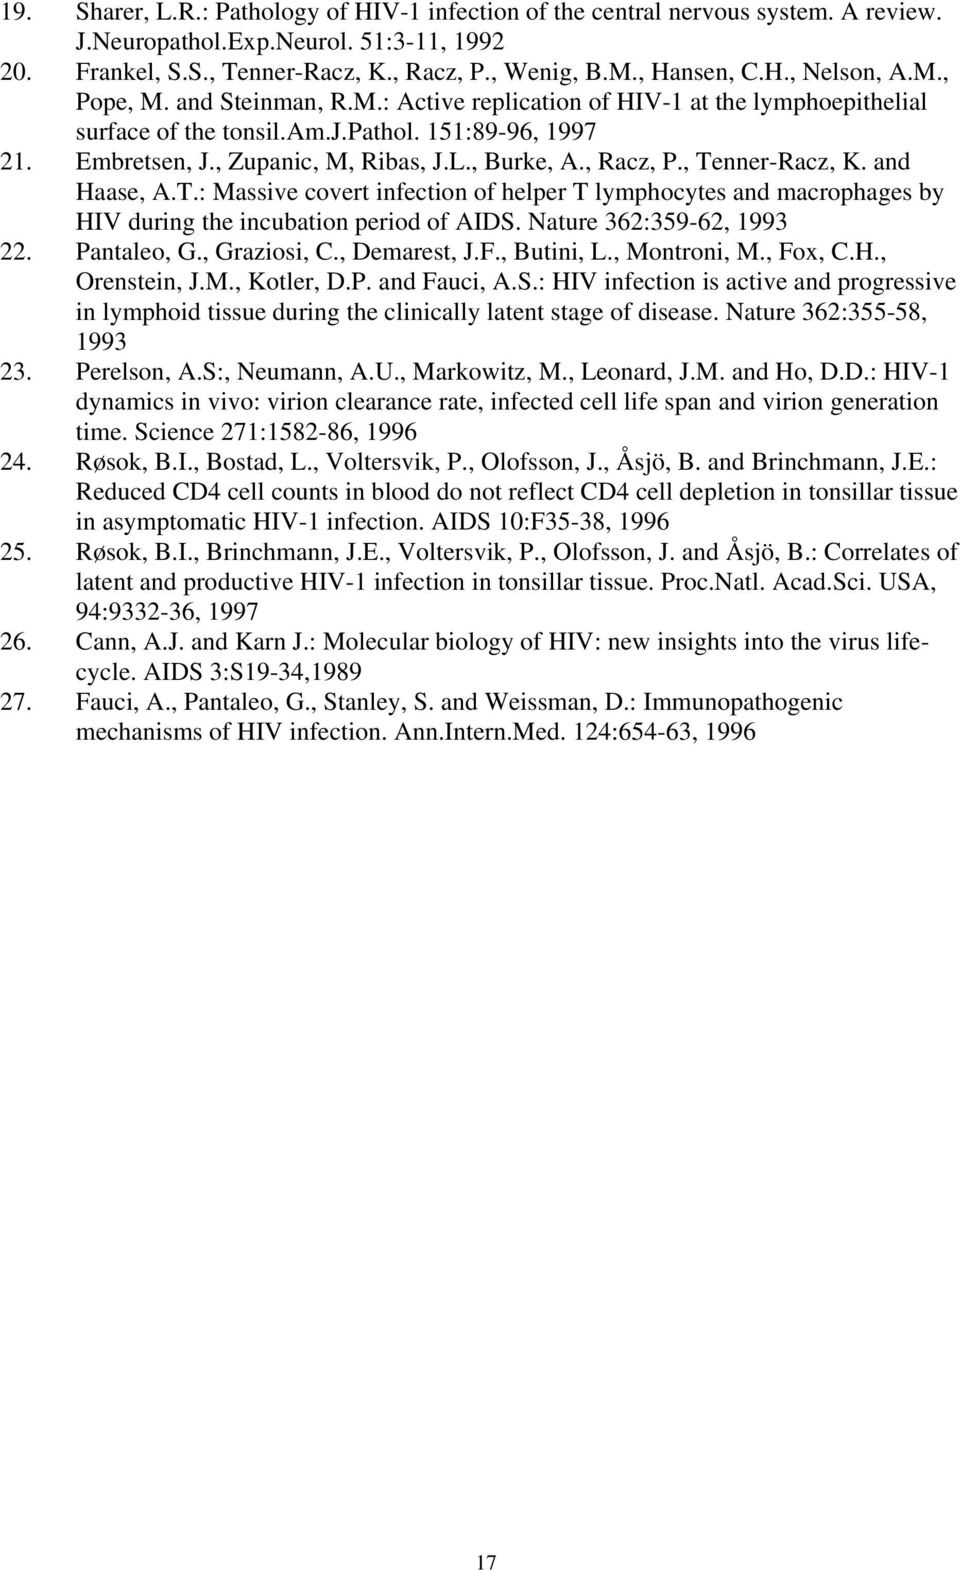 , Tenner-Racz, K. and Haase, A.T.: Massive covert infection of helper T lymphocytes and macrophages by HIV during the incubation period of AIDS. Nature 362:359-62, 1993 22. Pantaleo, G., Graziosi, C.